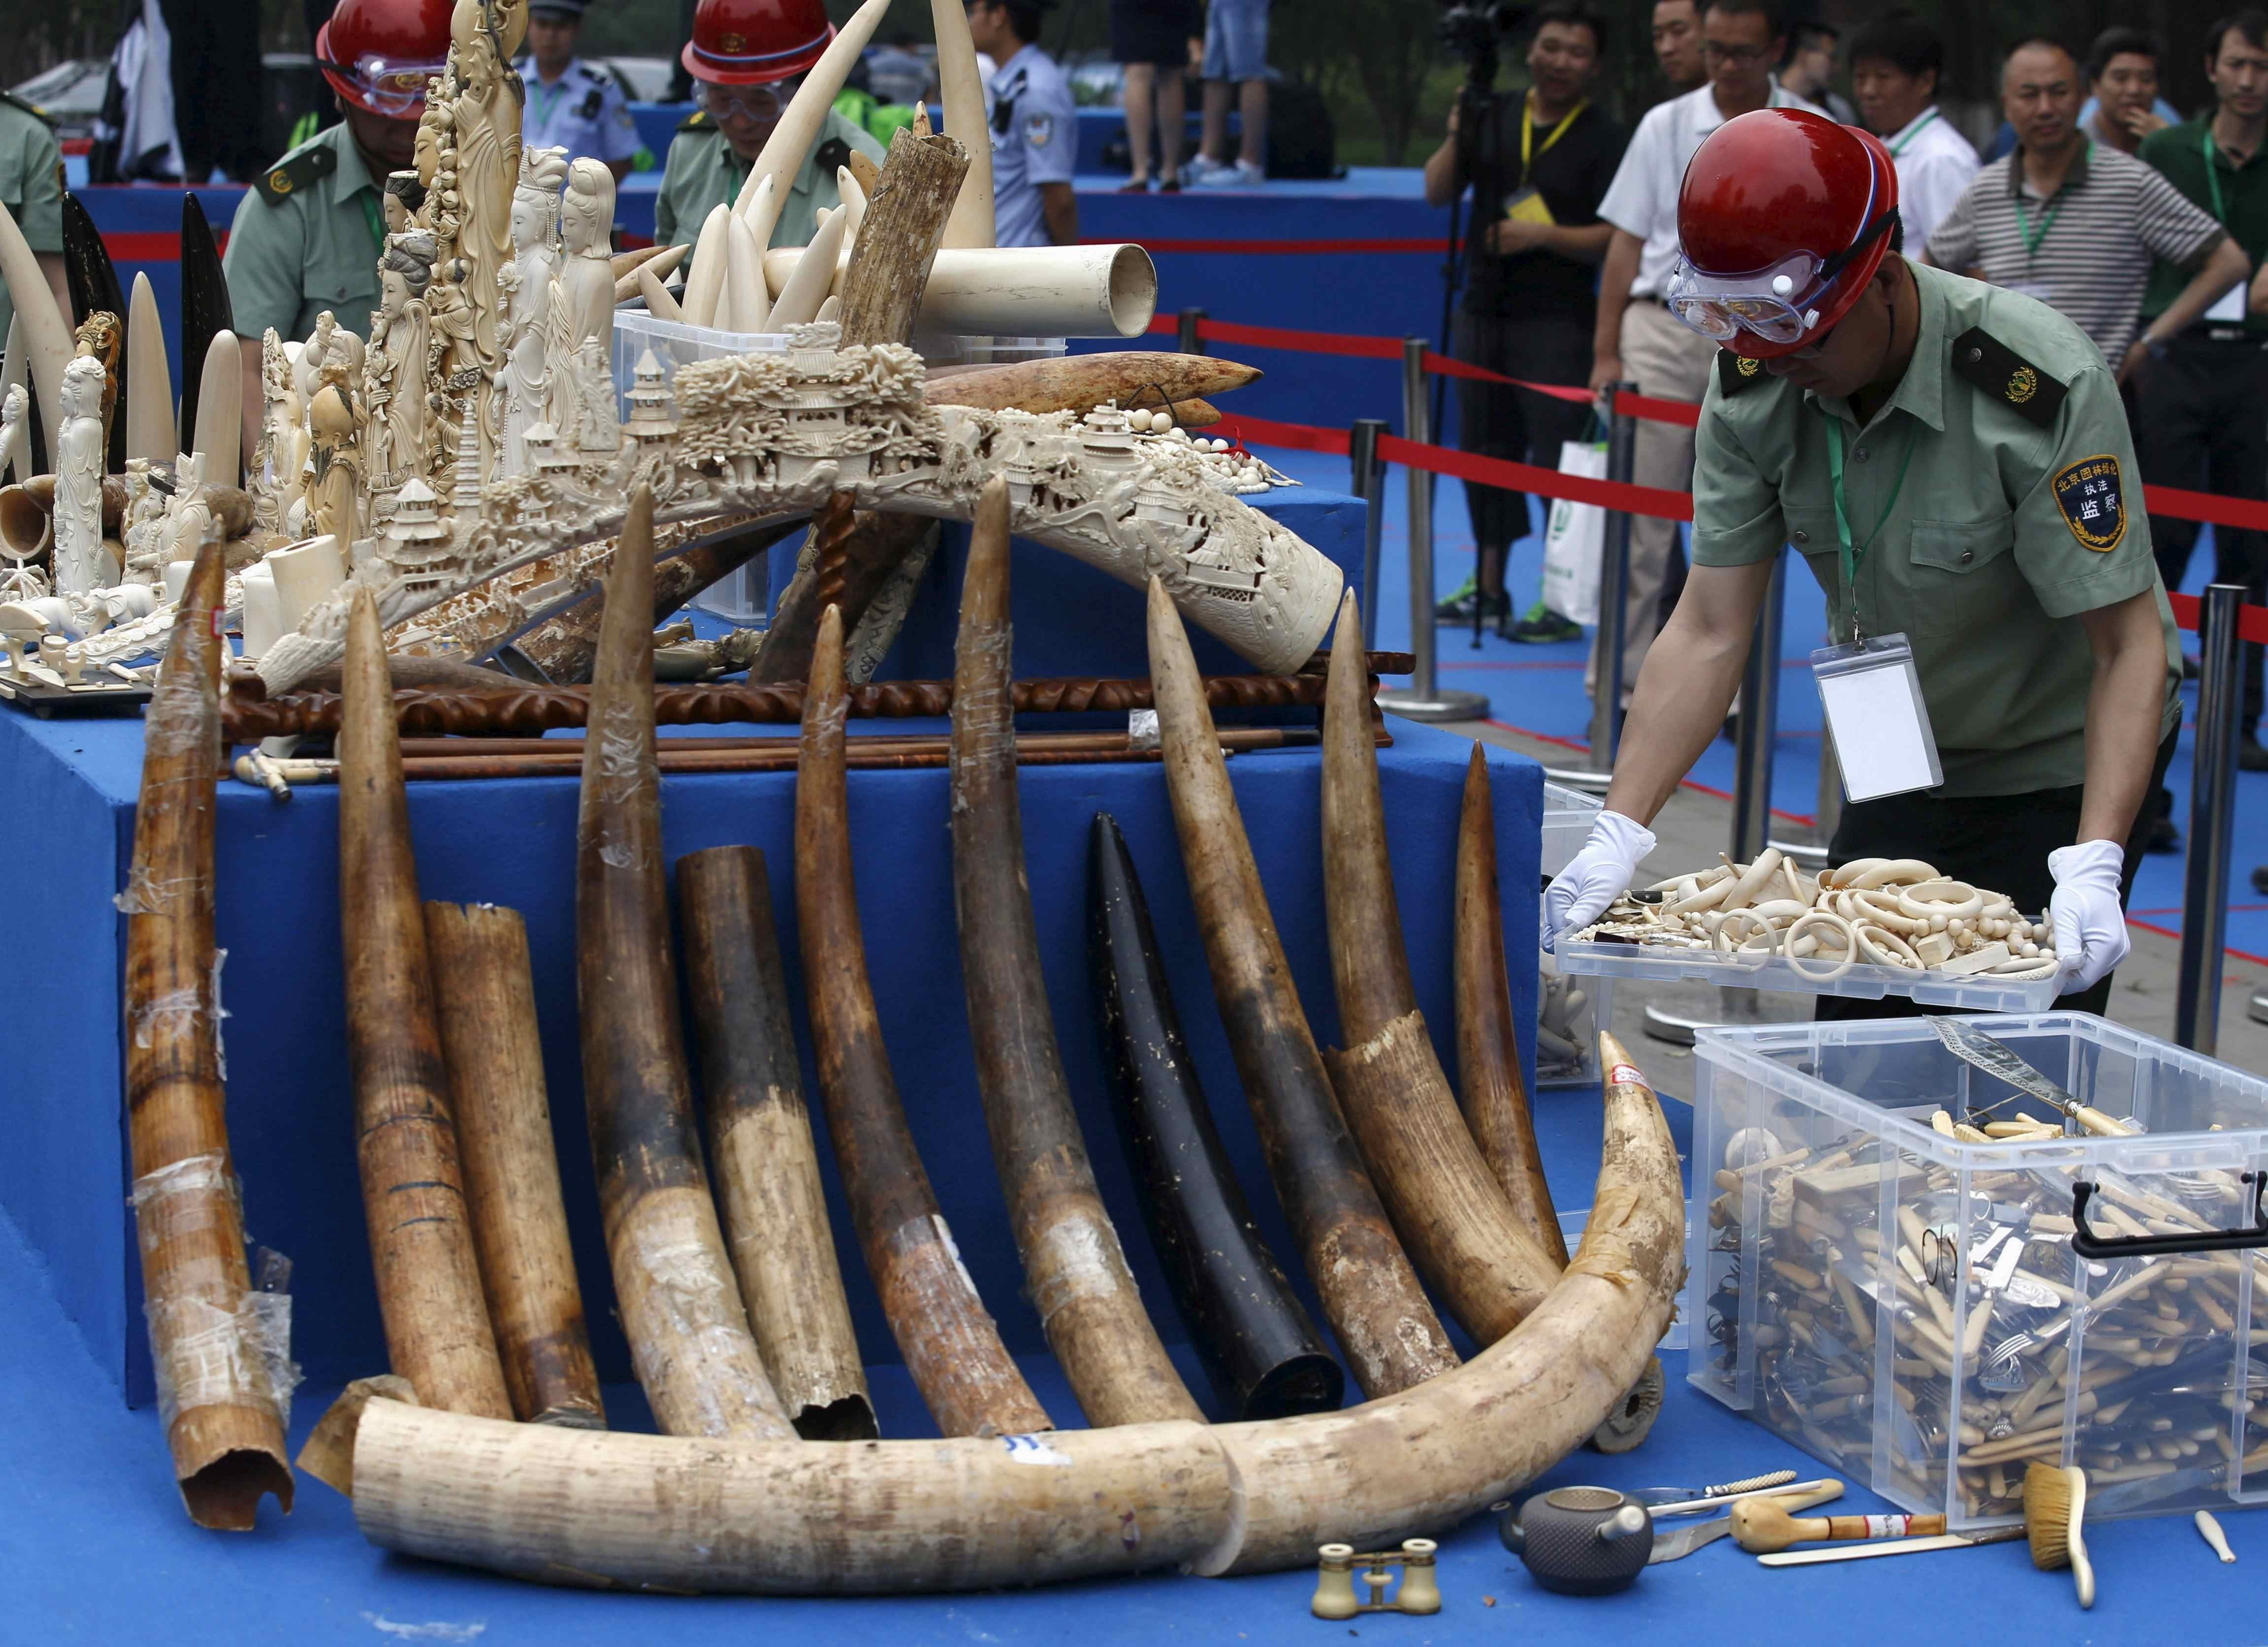 fb674e27e18c Mainland China ban on ivory sales to come into force on Sunday ...